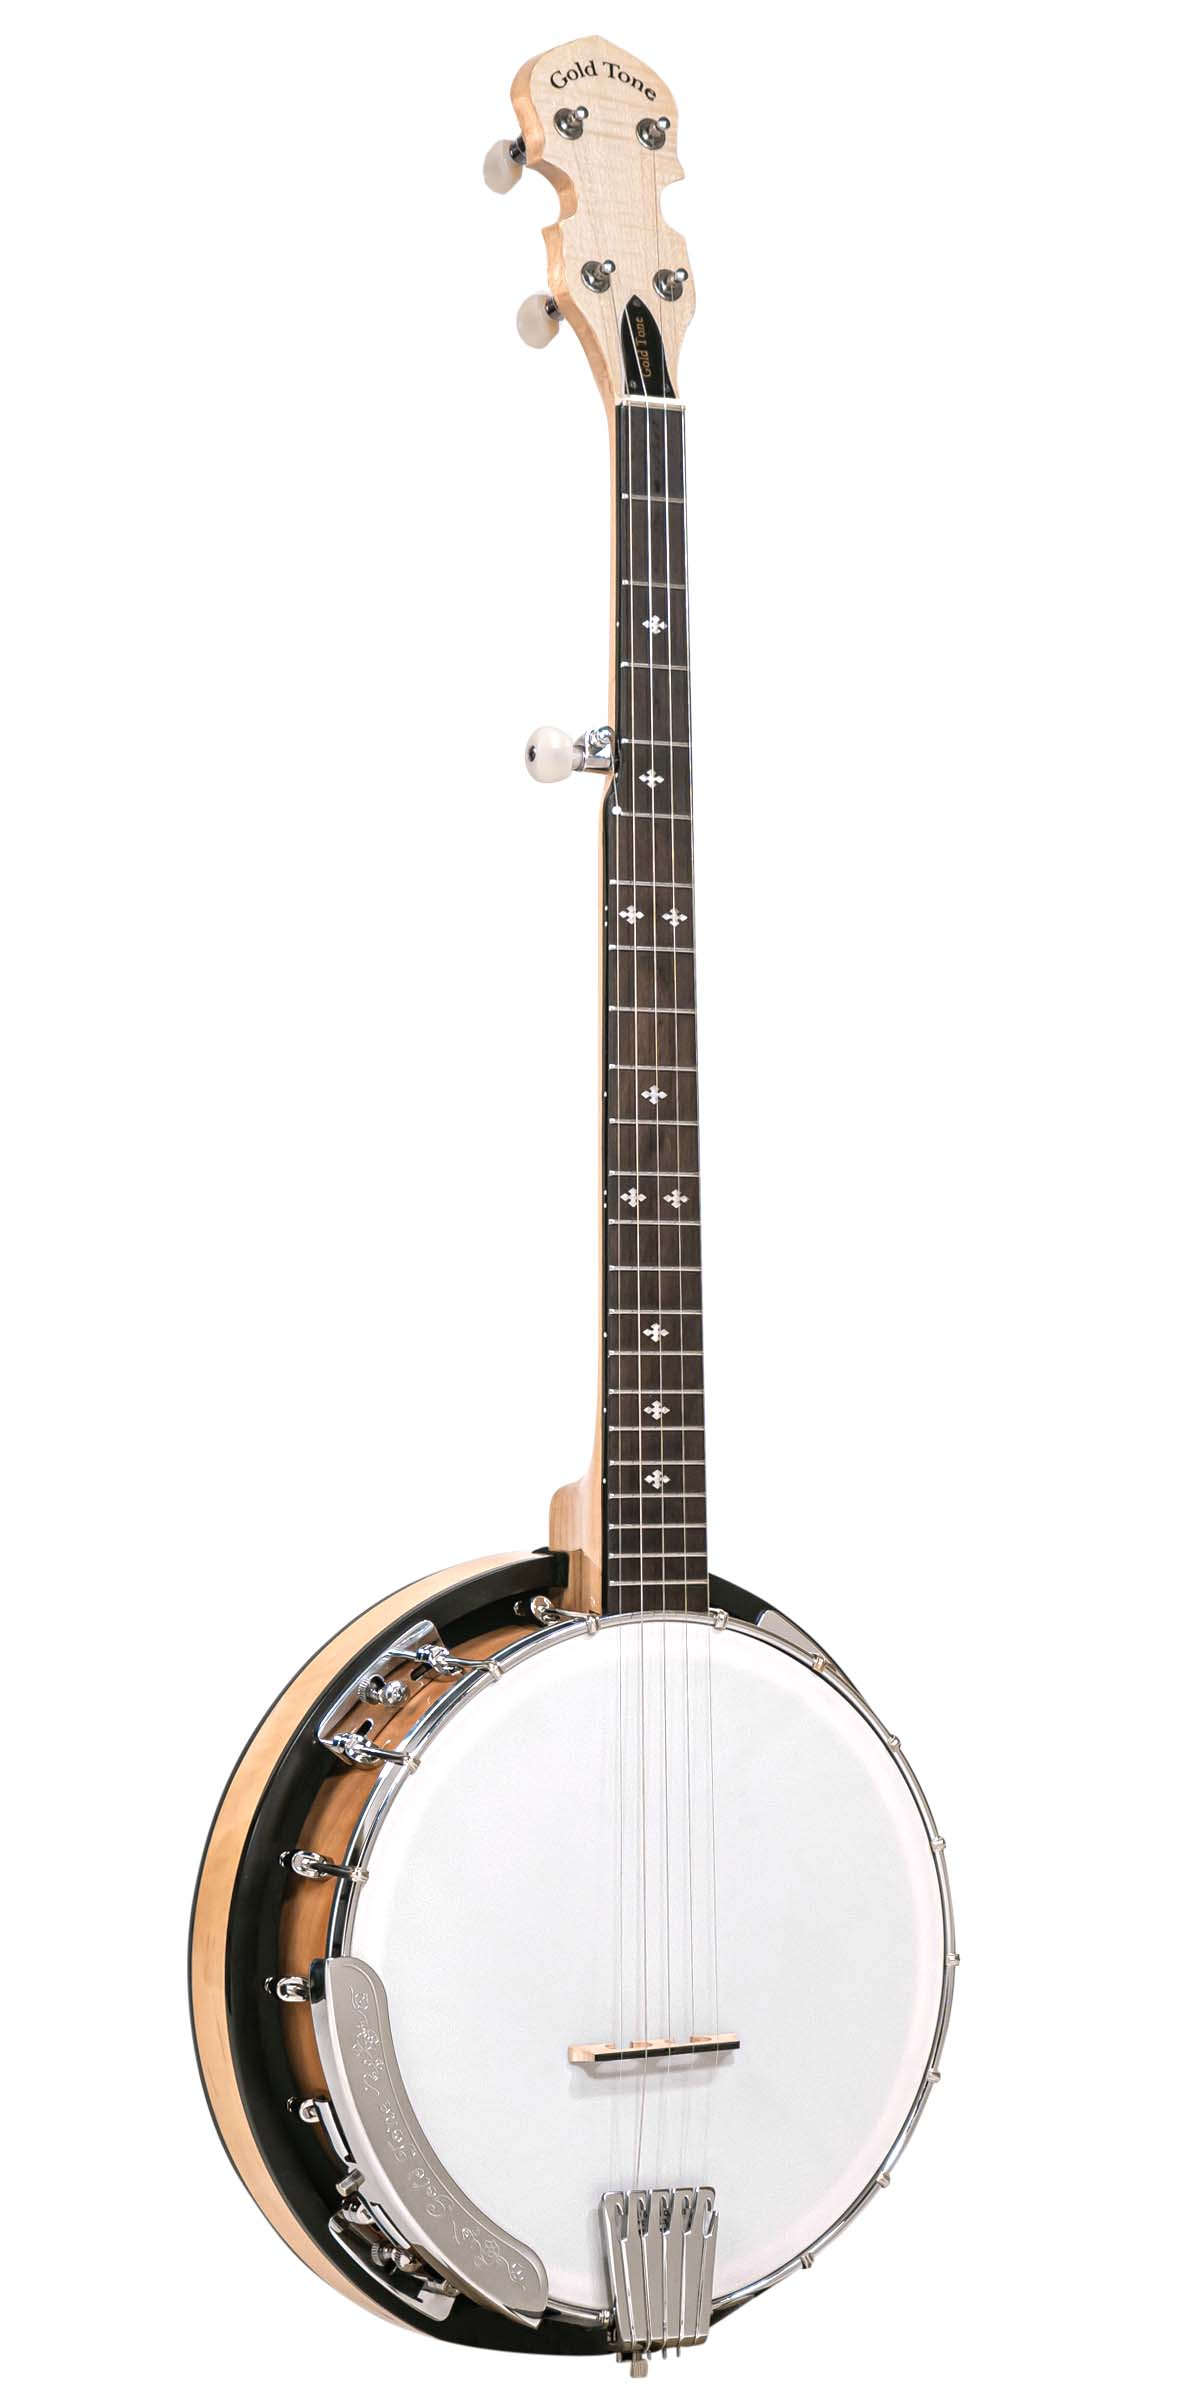 CC-100RW: Cripple Creek Resonator Banjo with Wide Fingerboard